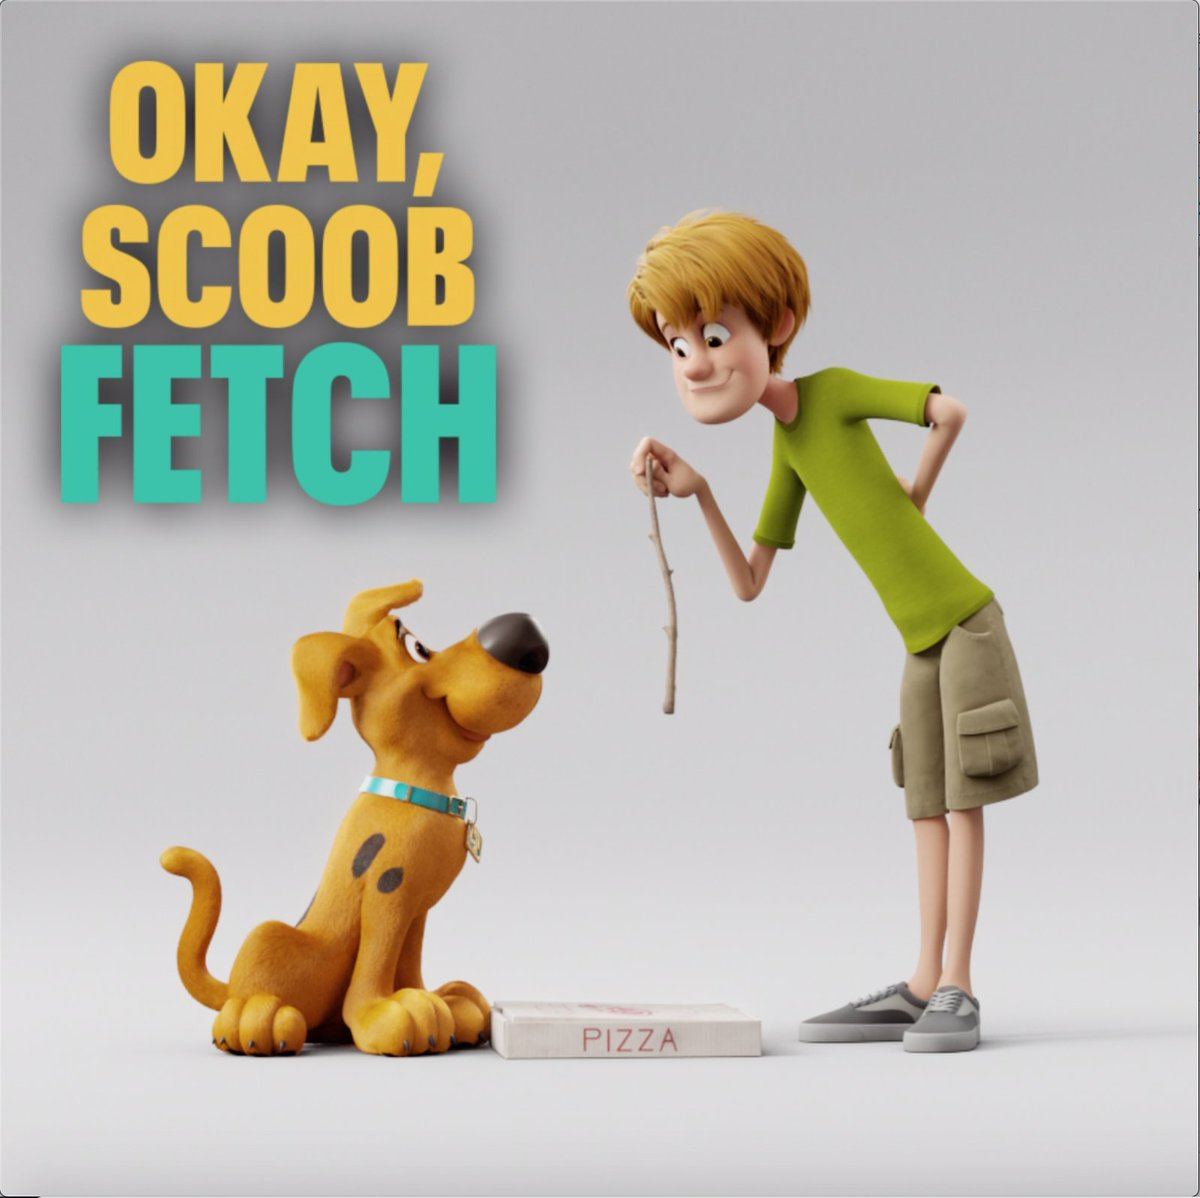 Replying to @scoob: Stop trying to make fetch happen 😉#NationalPuppyDay #SCOOB